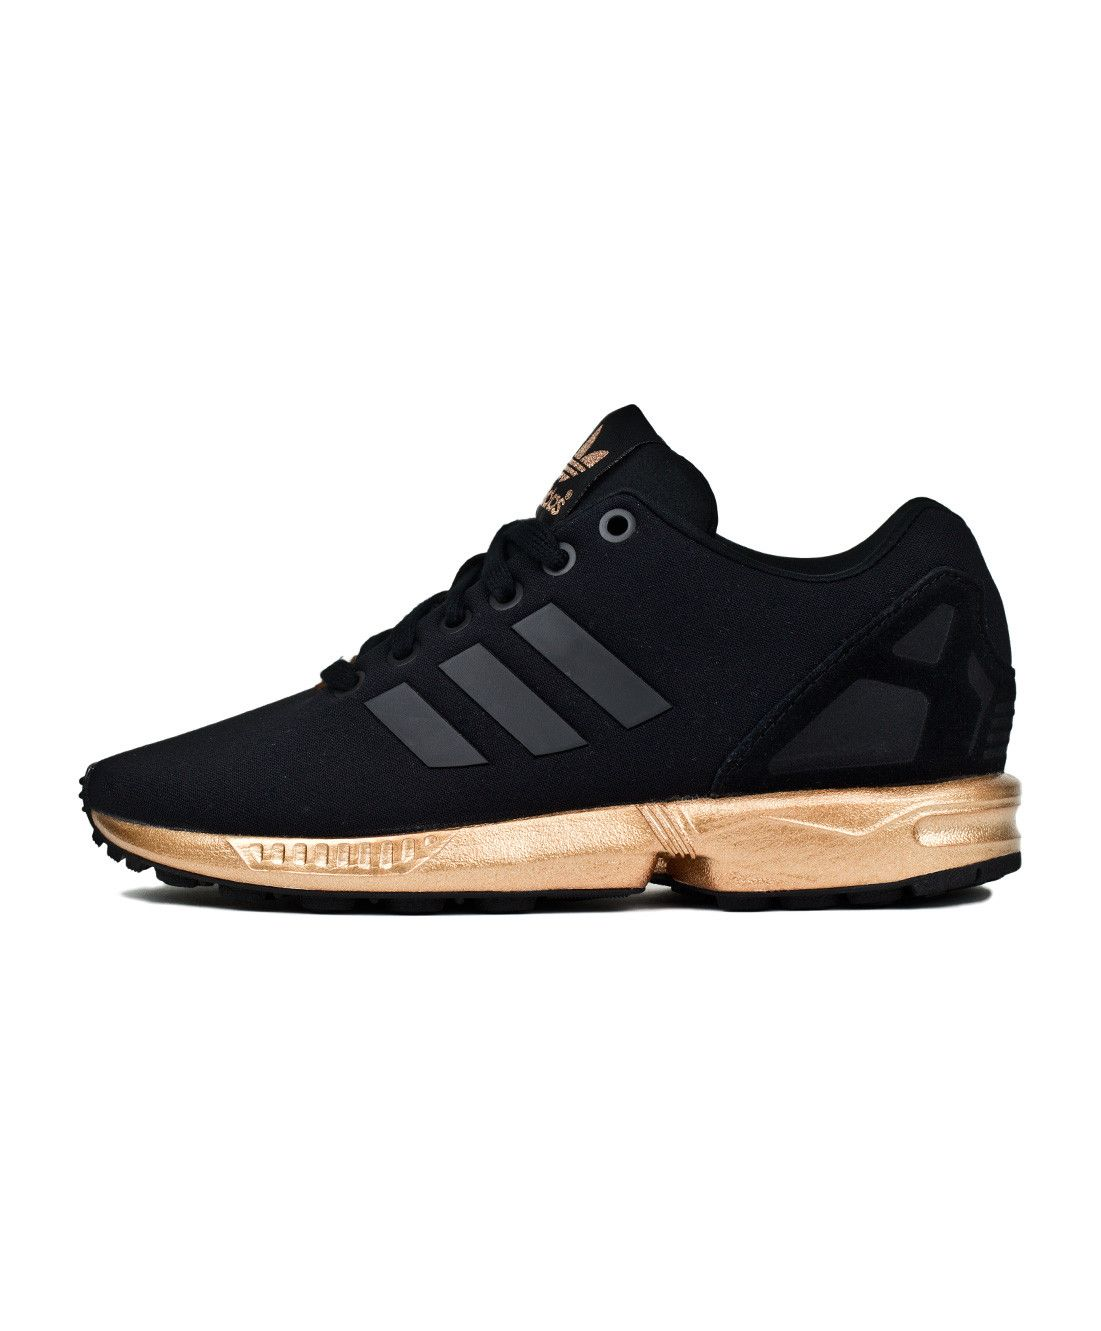 zx flux adidas ladies